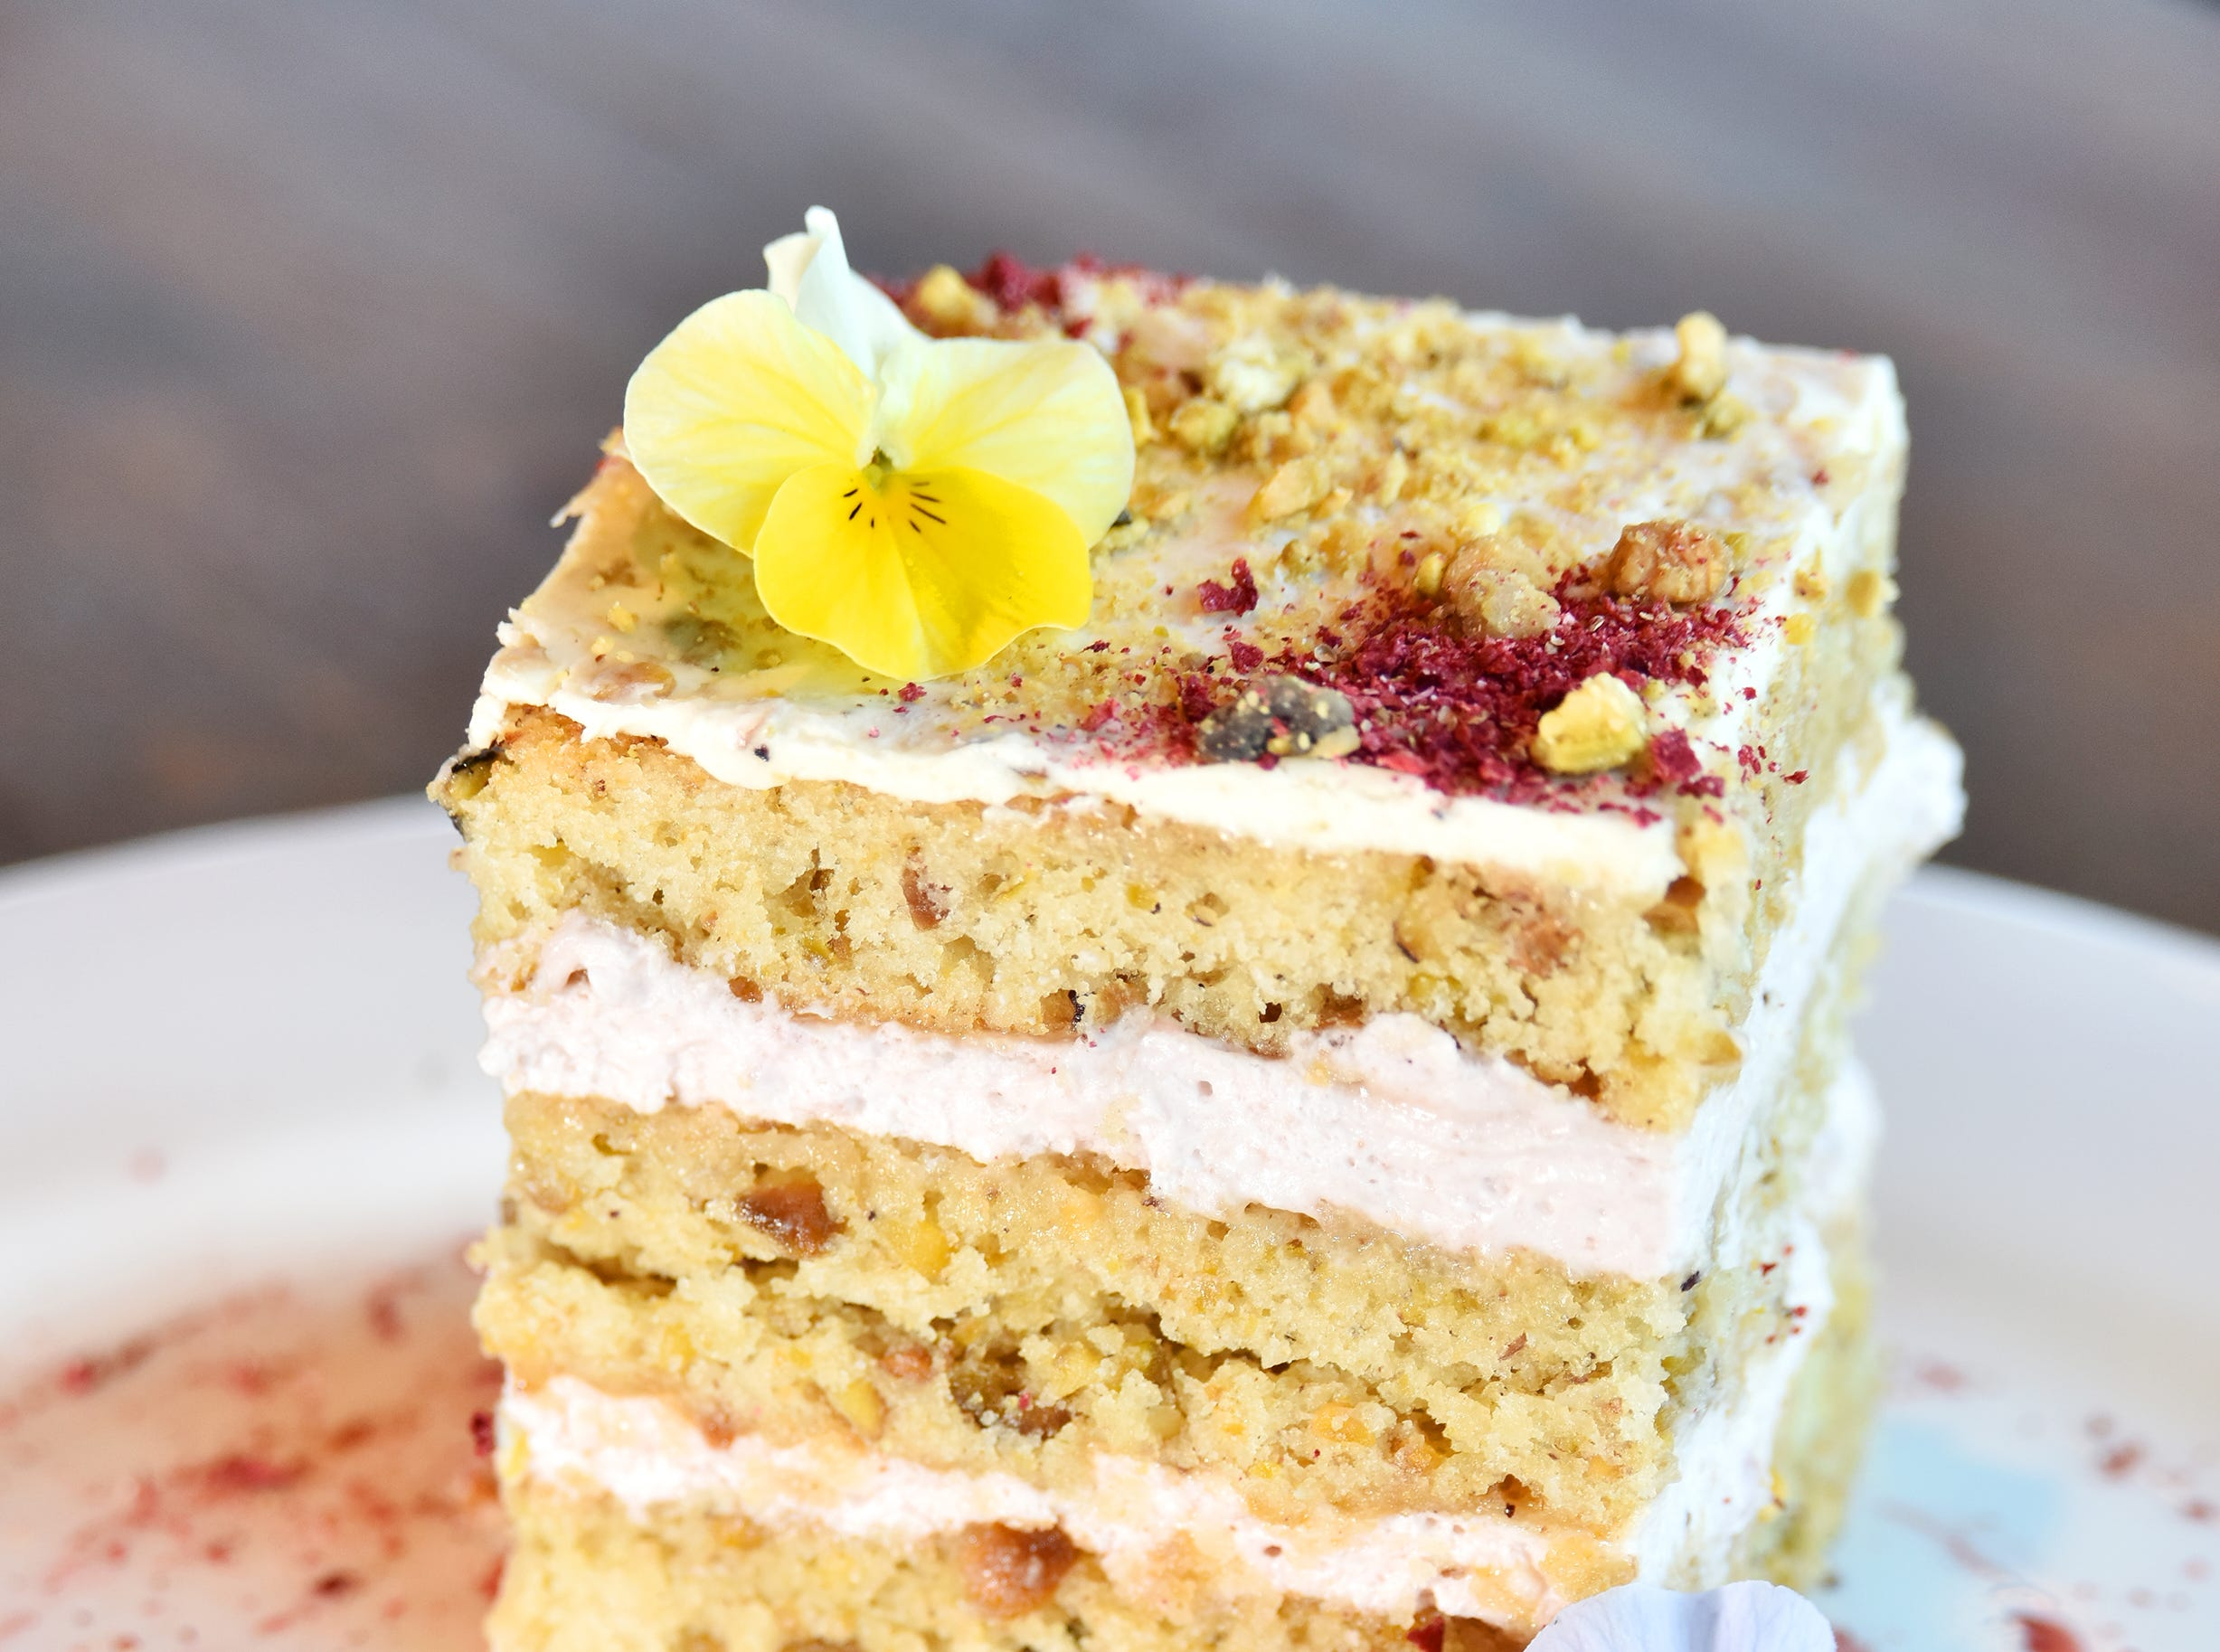 Toasted pistachio and strawberry cake with strawberry coulis and stawberry dust made by Samantha Fredrickson at Stella's Southern Brasserie.